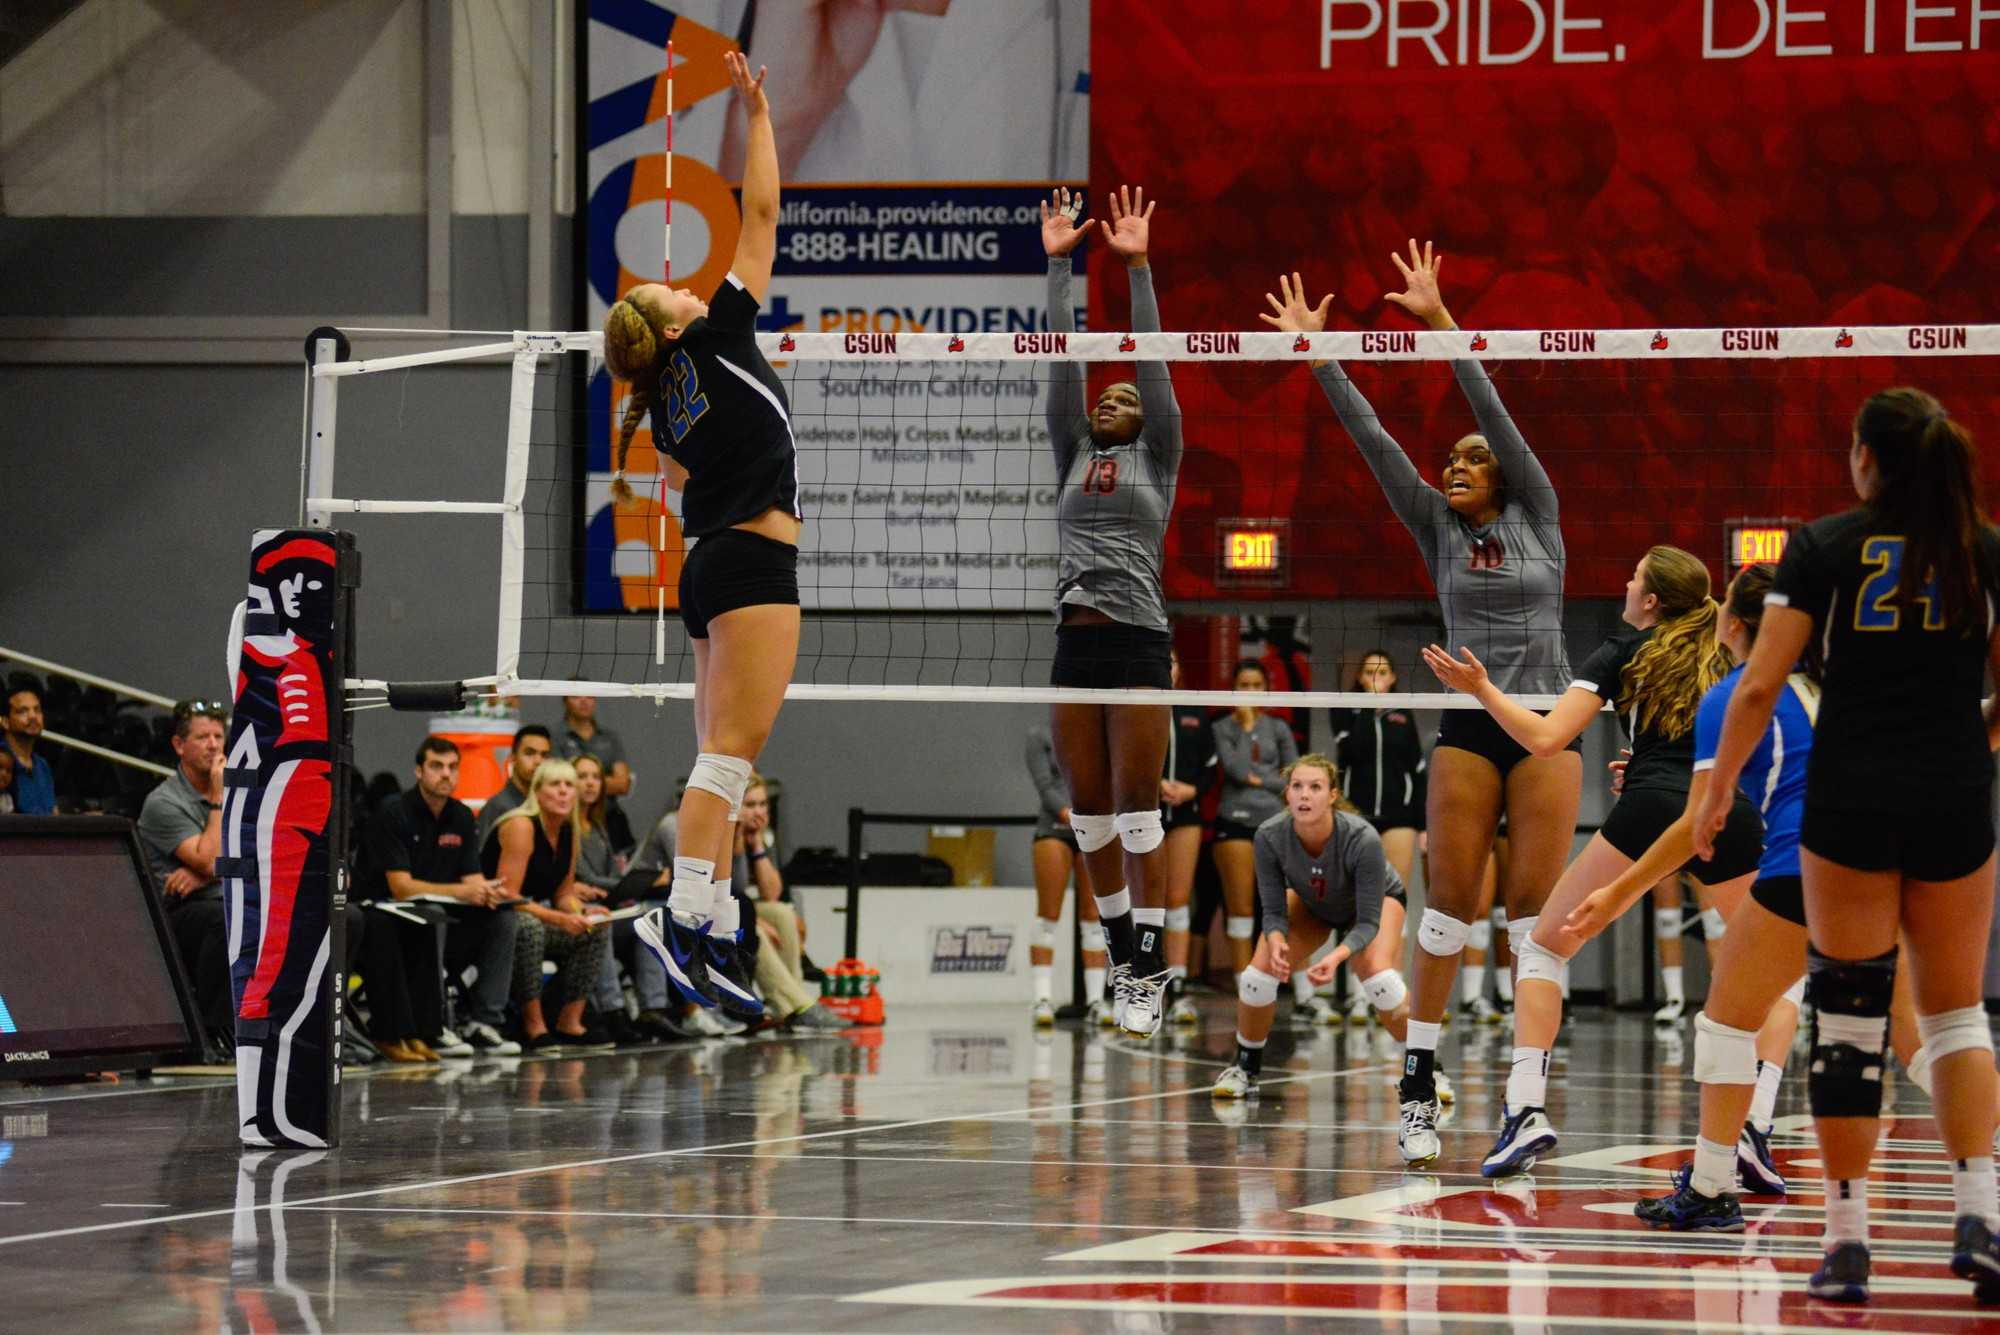 Volleyball players jump up and reach for the ball